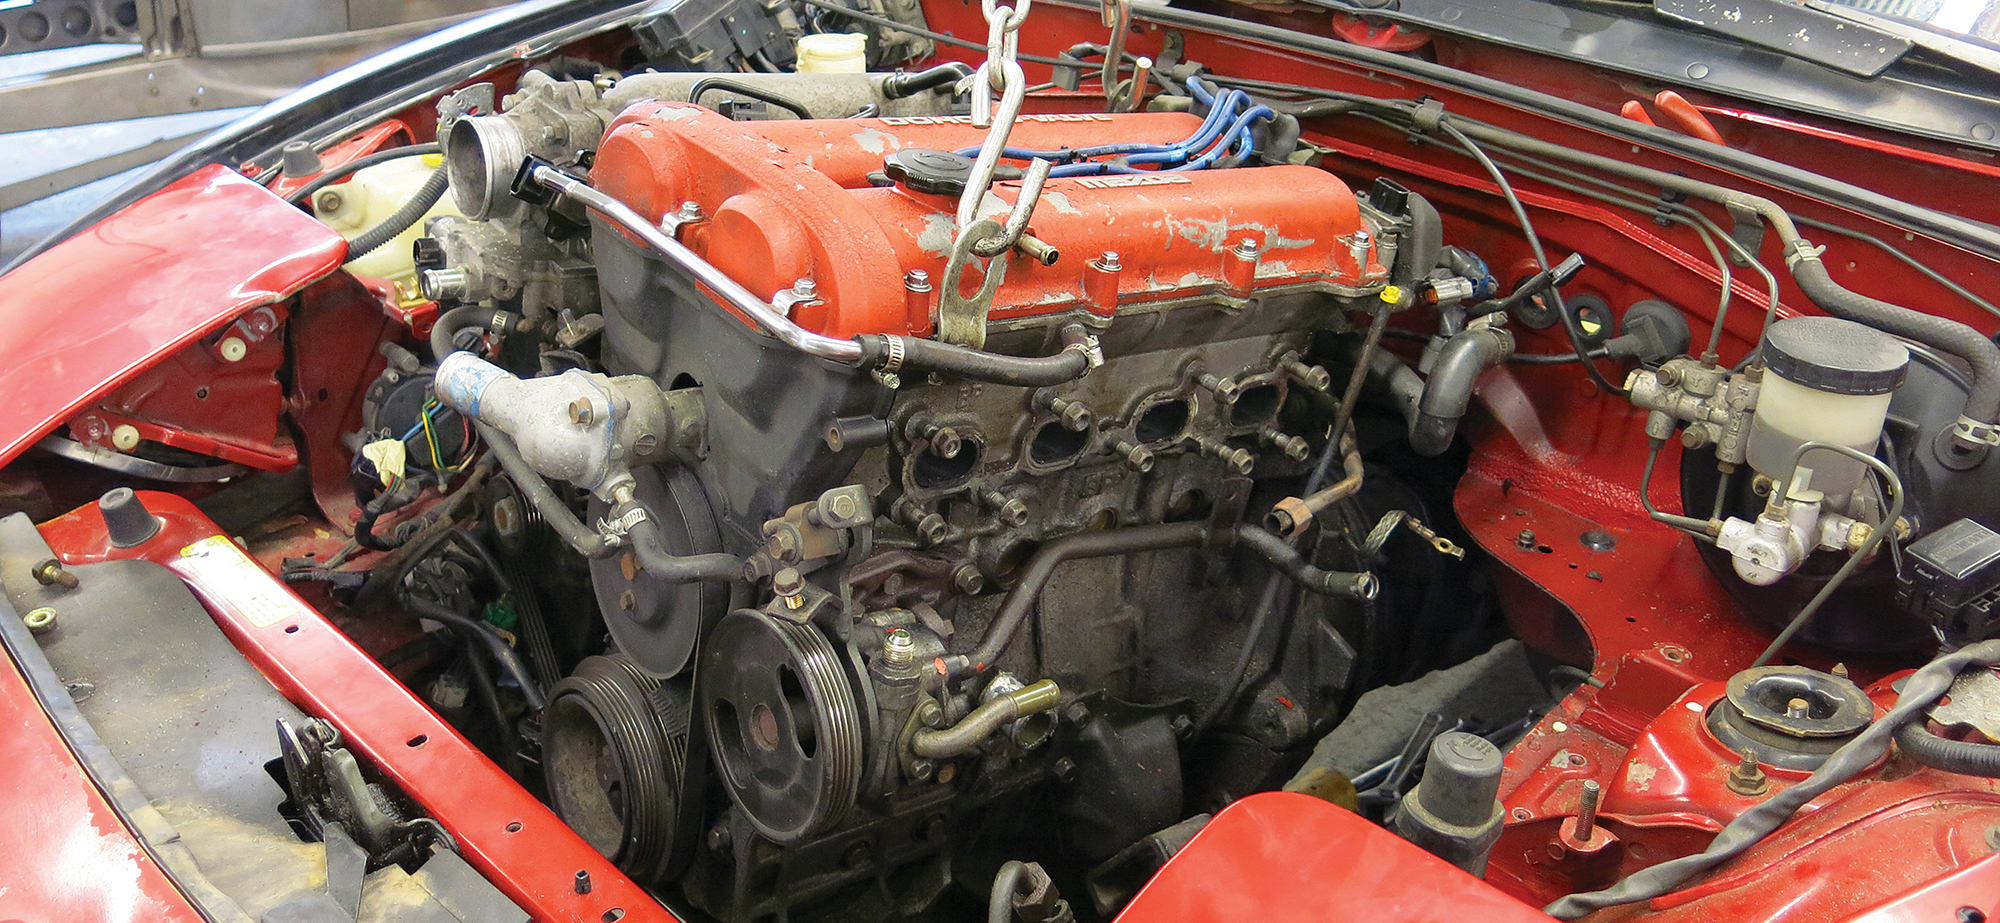 Engine Swap Science: 14 Steps to Begin Your Engine Swap